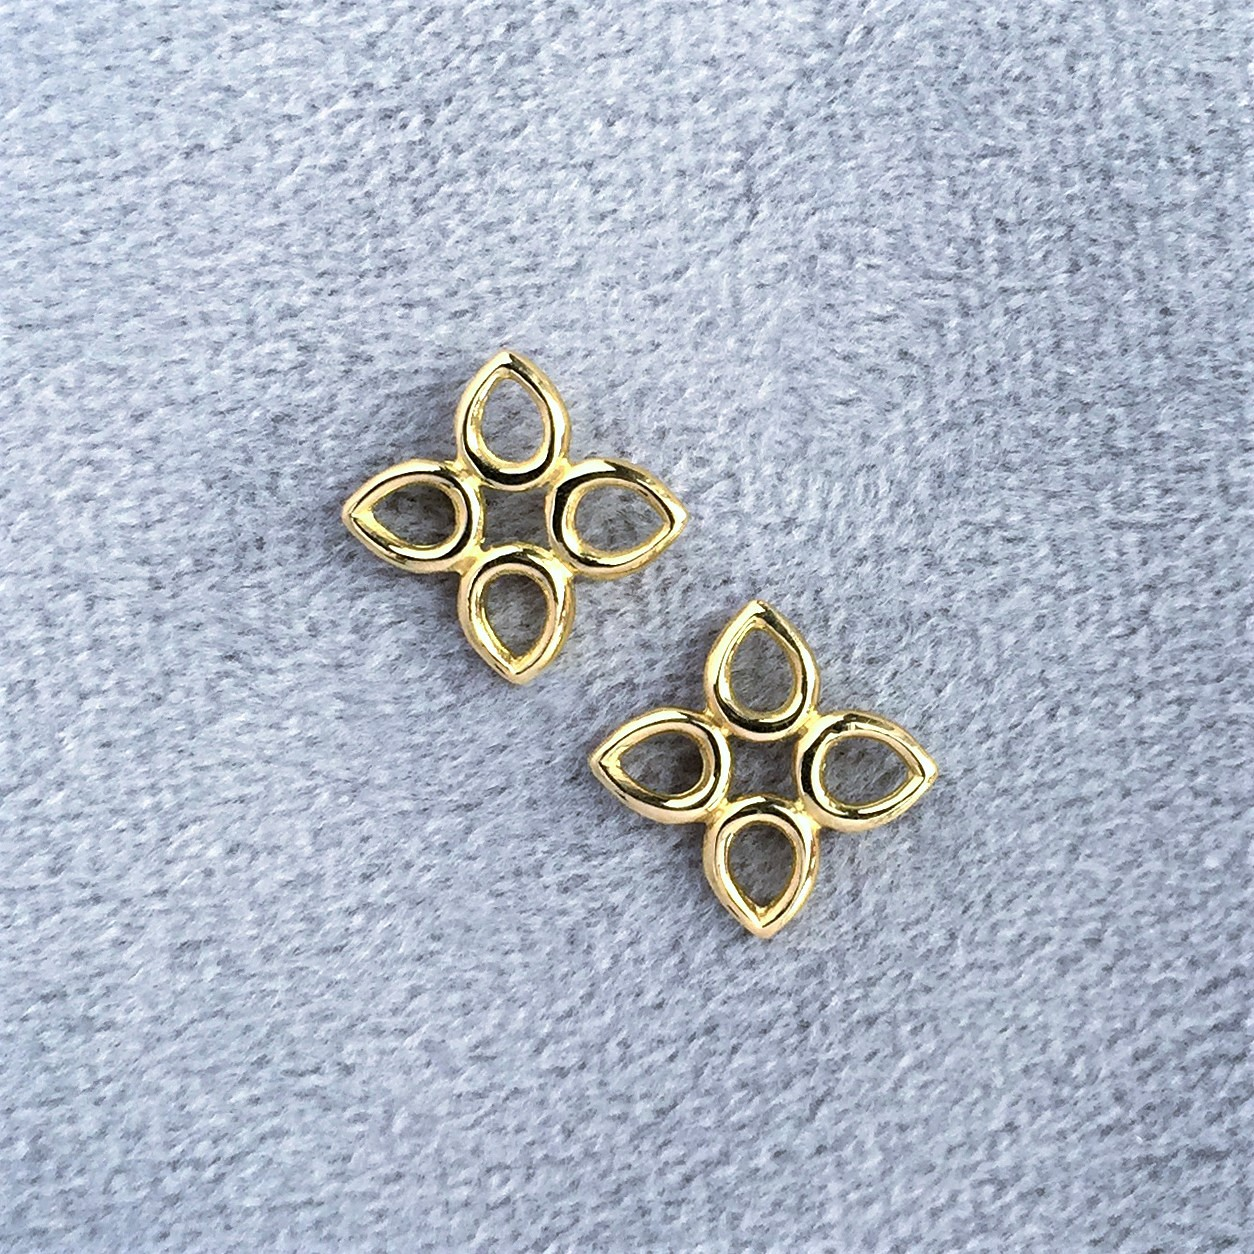 Sevilla motif wire earrings in yellow gold<br/><br/>Also available in sterling silver